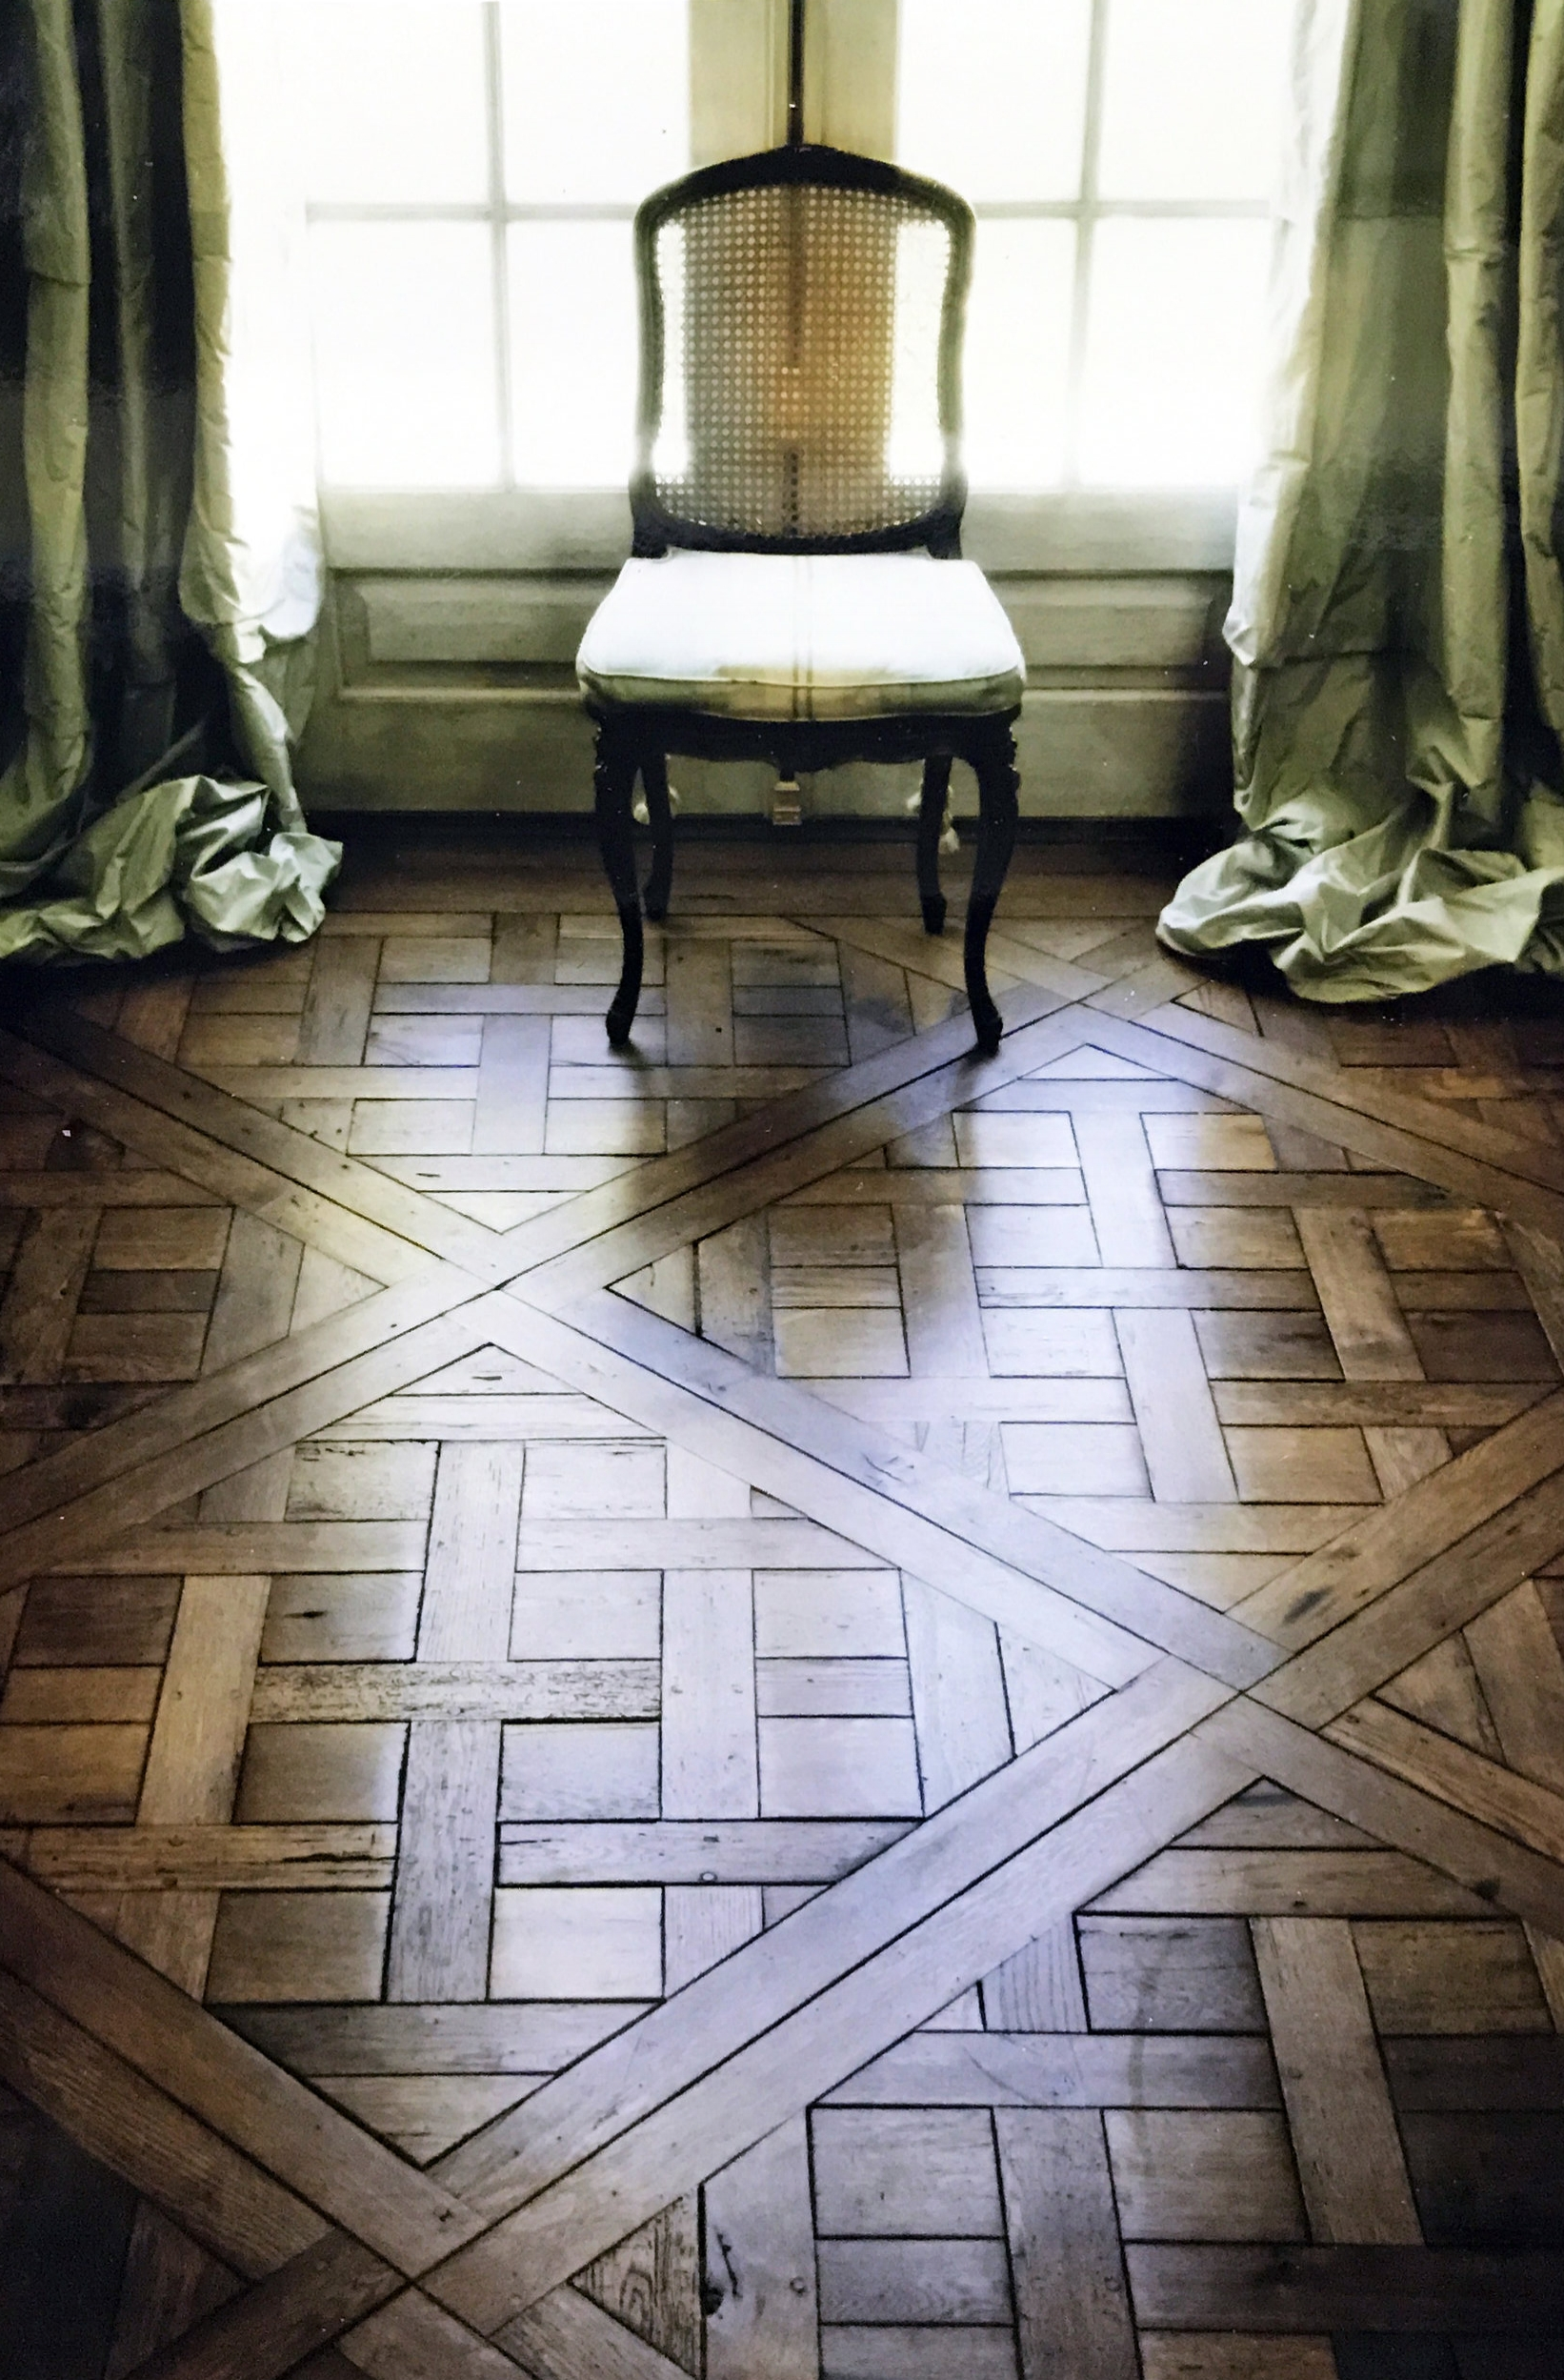 Parquet Floors with chair and window in Parisian style home.